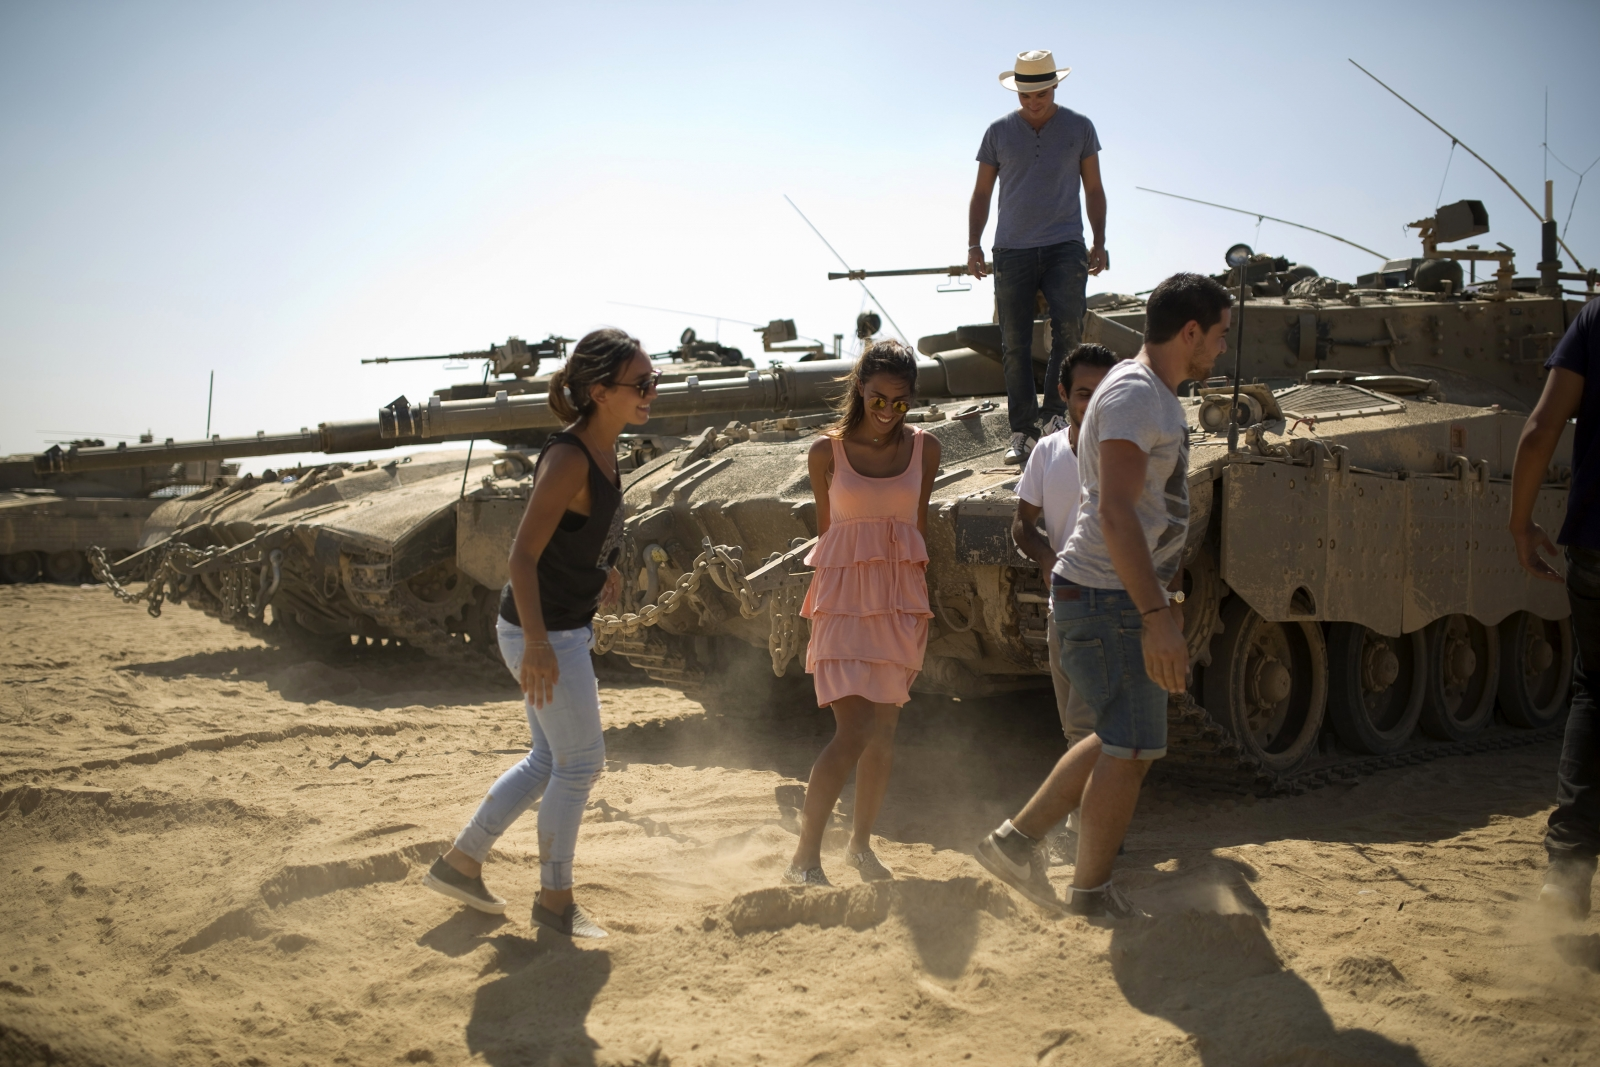 Tourists from Belgium and France walk near tanks at a staging area outside the northern Gaza Strip July 27, 2014.